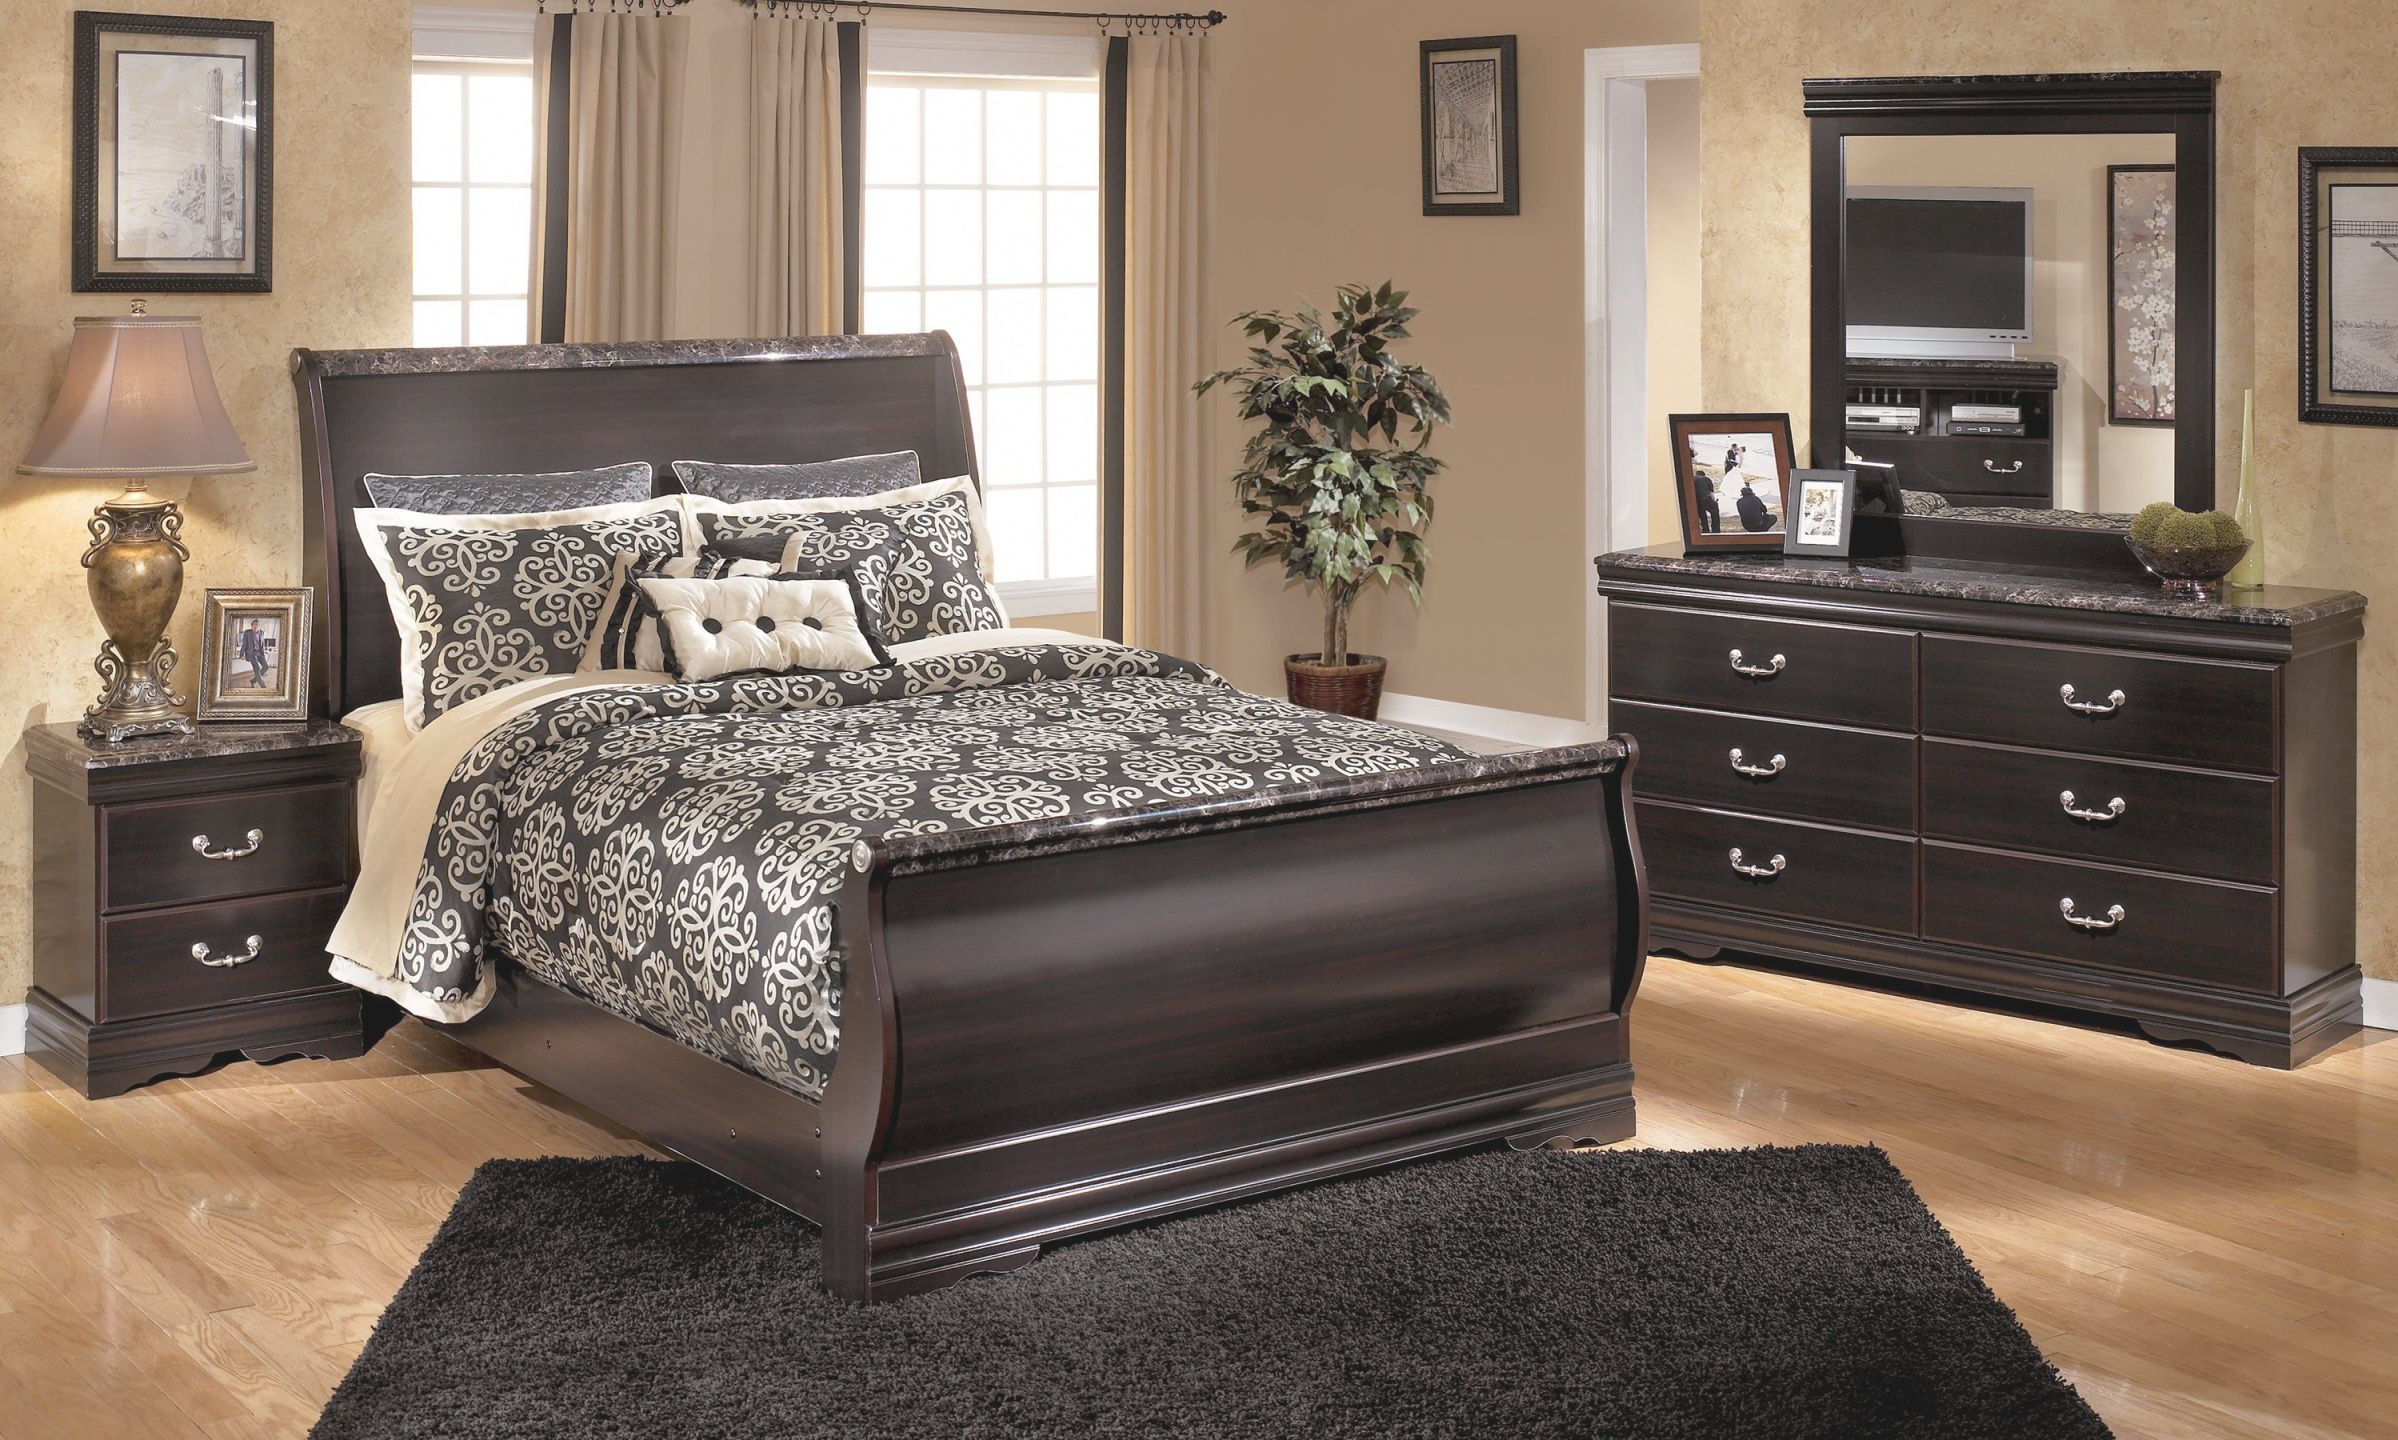 Bedroom Design Ashley Sleigh Furniture Porter Collection Within